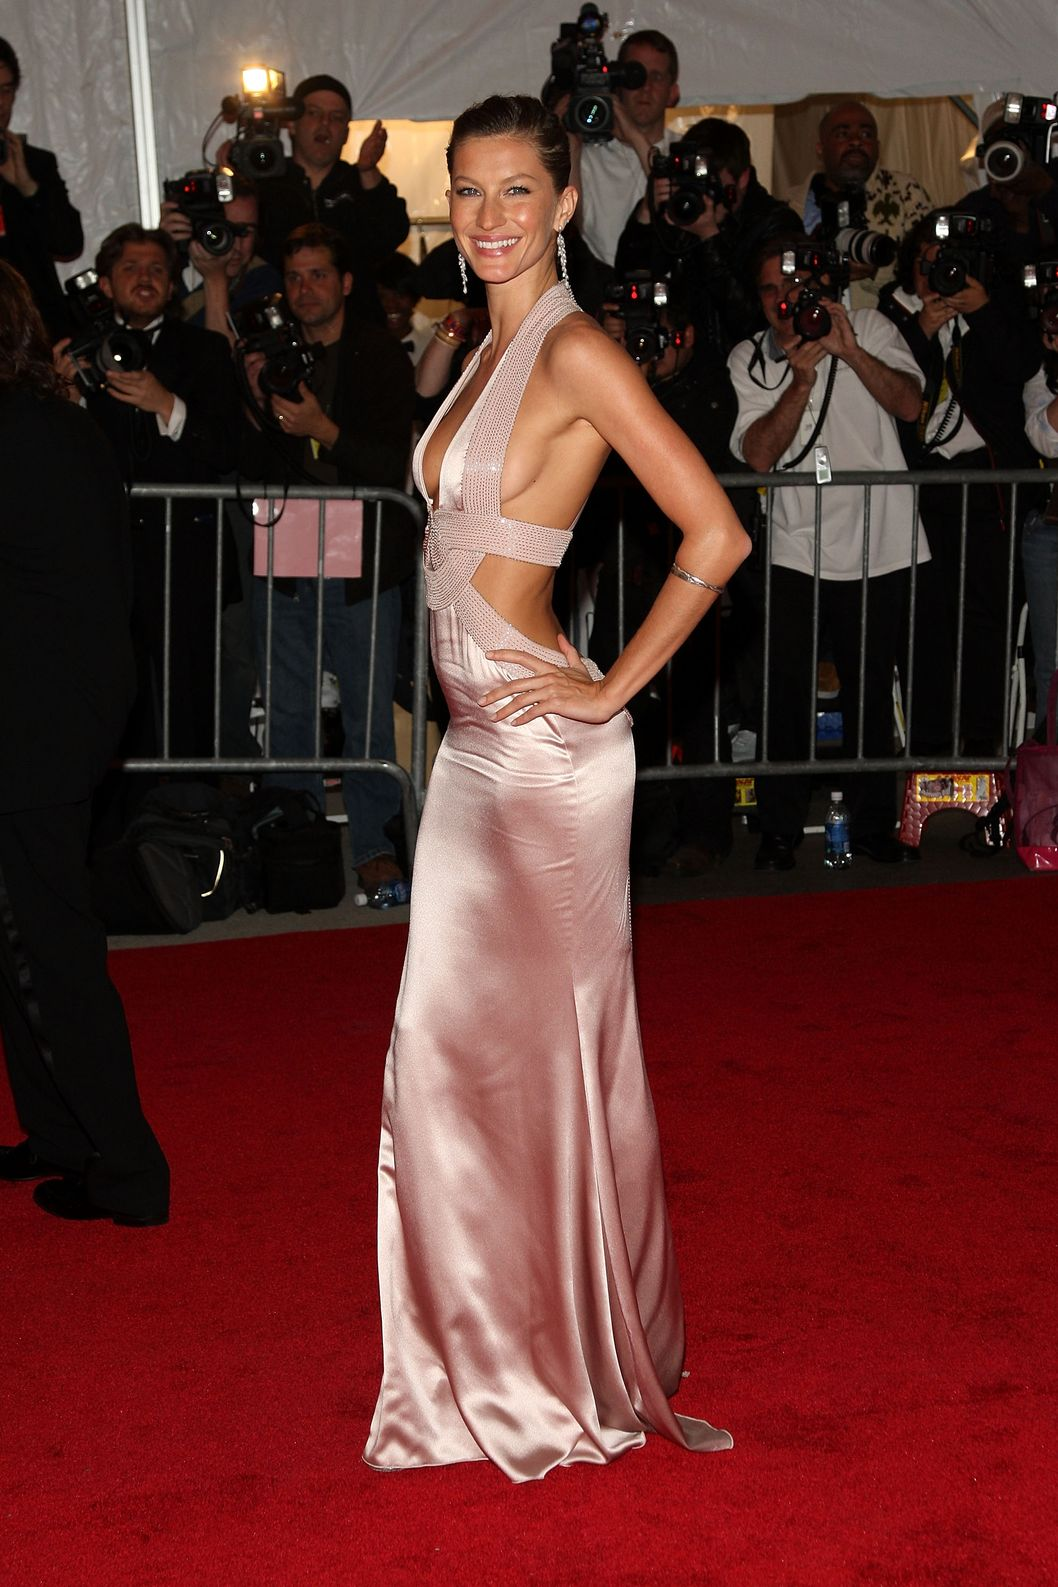 NEW YORK - MAY 05:  Model Gisele Bundchen arrives at the Metropolitan Museum of Art Costume Institute Gala, Superheroes: Fashion and Fantasy, held at the Metropolitan Museum of Art on May 5, 2008 in New York City.  (Photo by Stephen Lovekin/Getty Images)